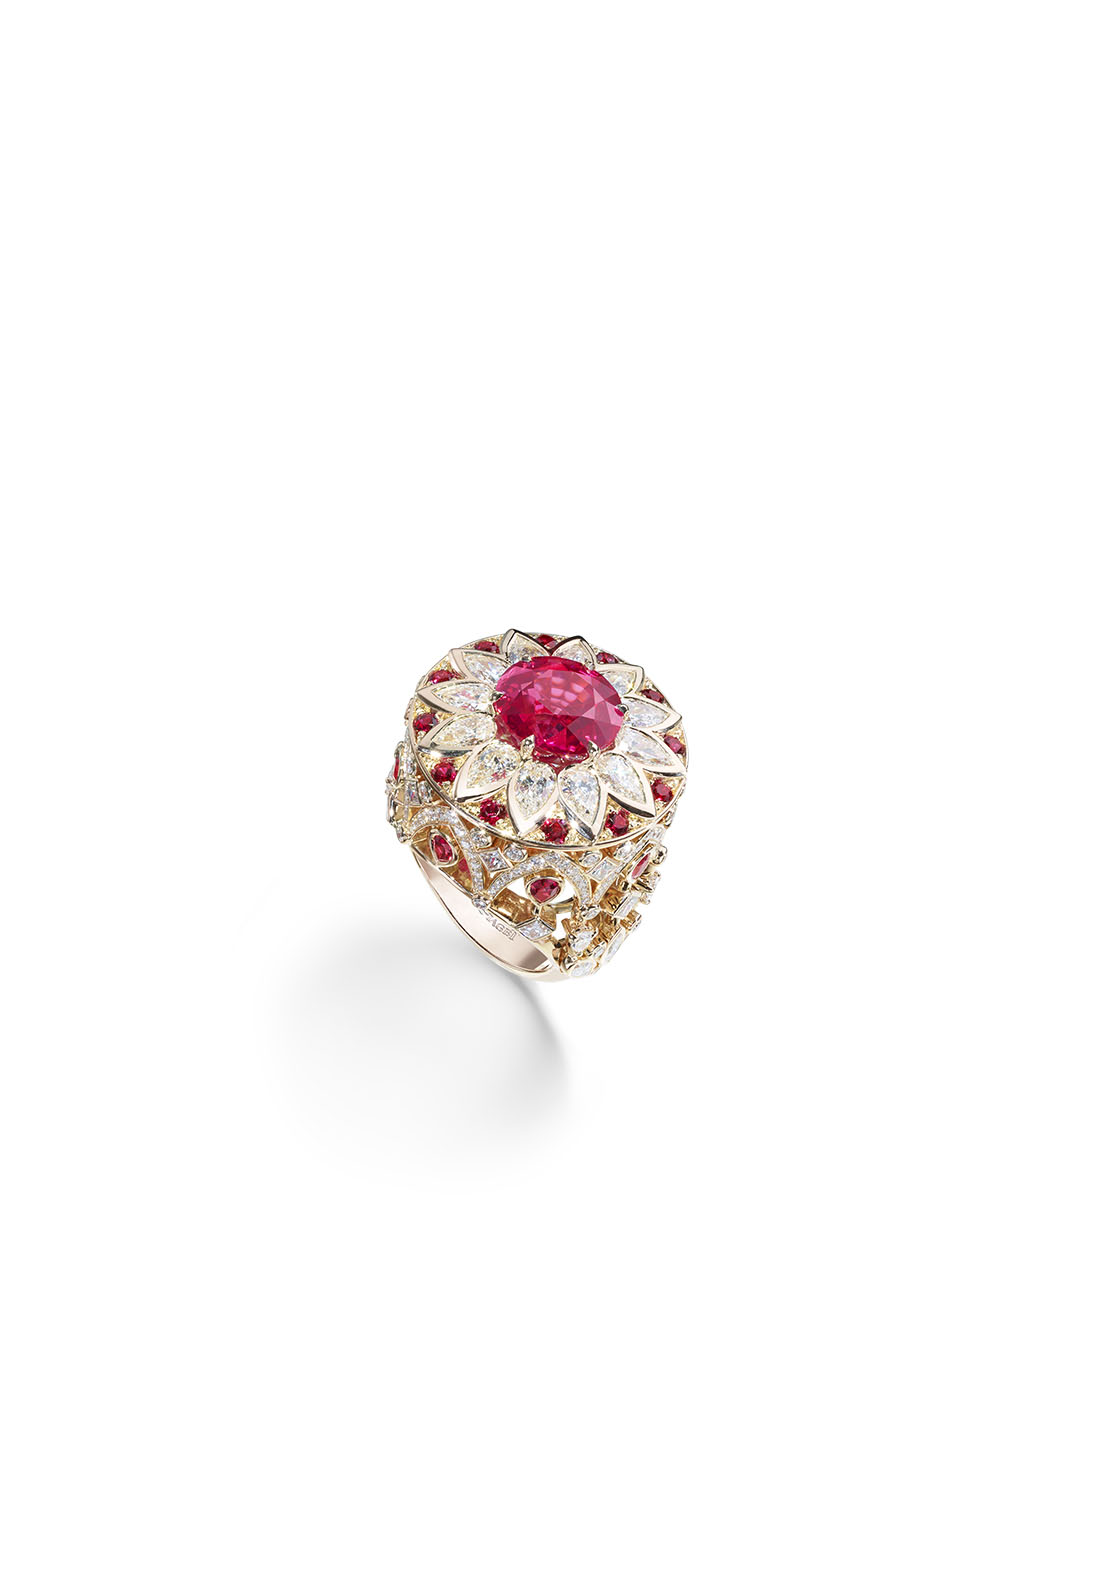 Piaget's High Jewelry Collection: Palazzo Ring. 18K pink gold set with a round-cut red spinel, 12 round-cut red spinels, eight pear-shaped red spinels, 16 pear-shaped diamonds, 14 princess-cut diamonds, six marquise-cut diamonds and 150 brilliant cut diamonds.